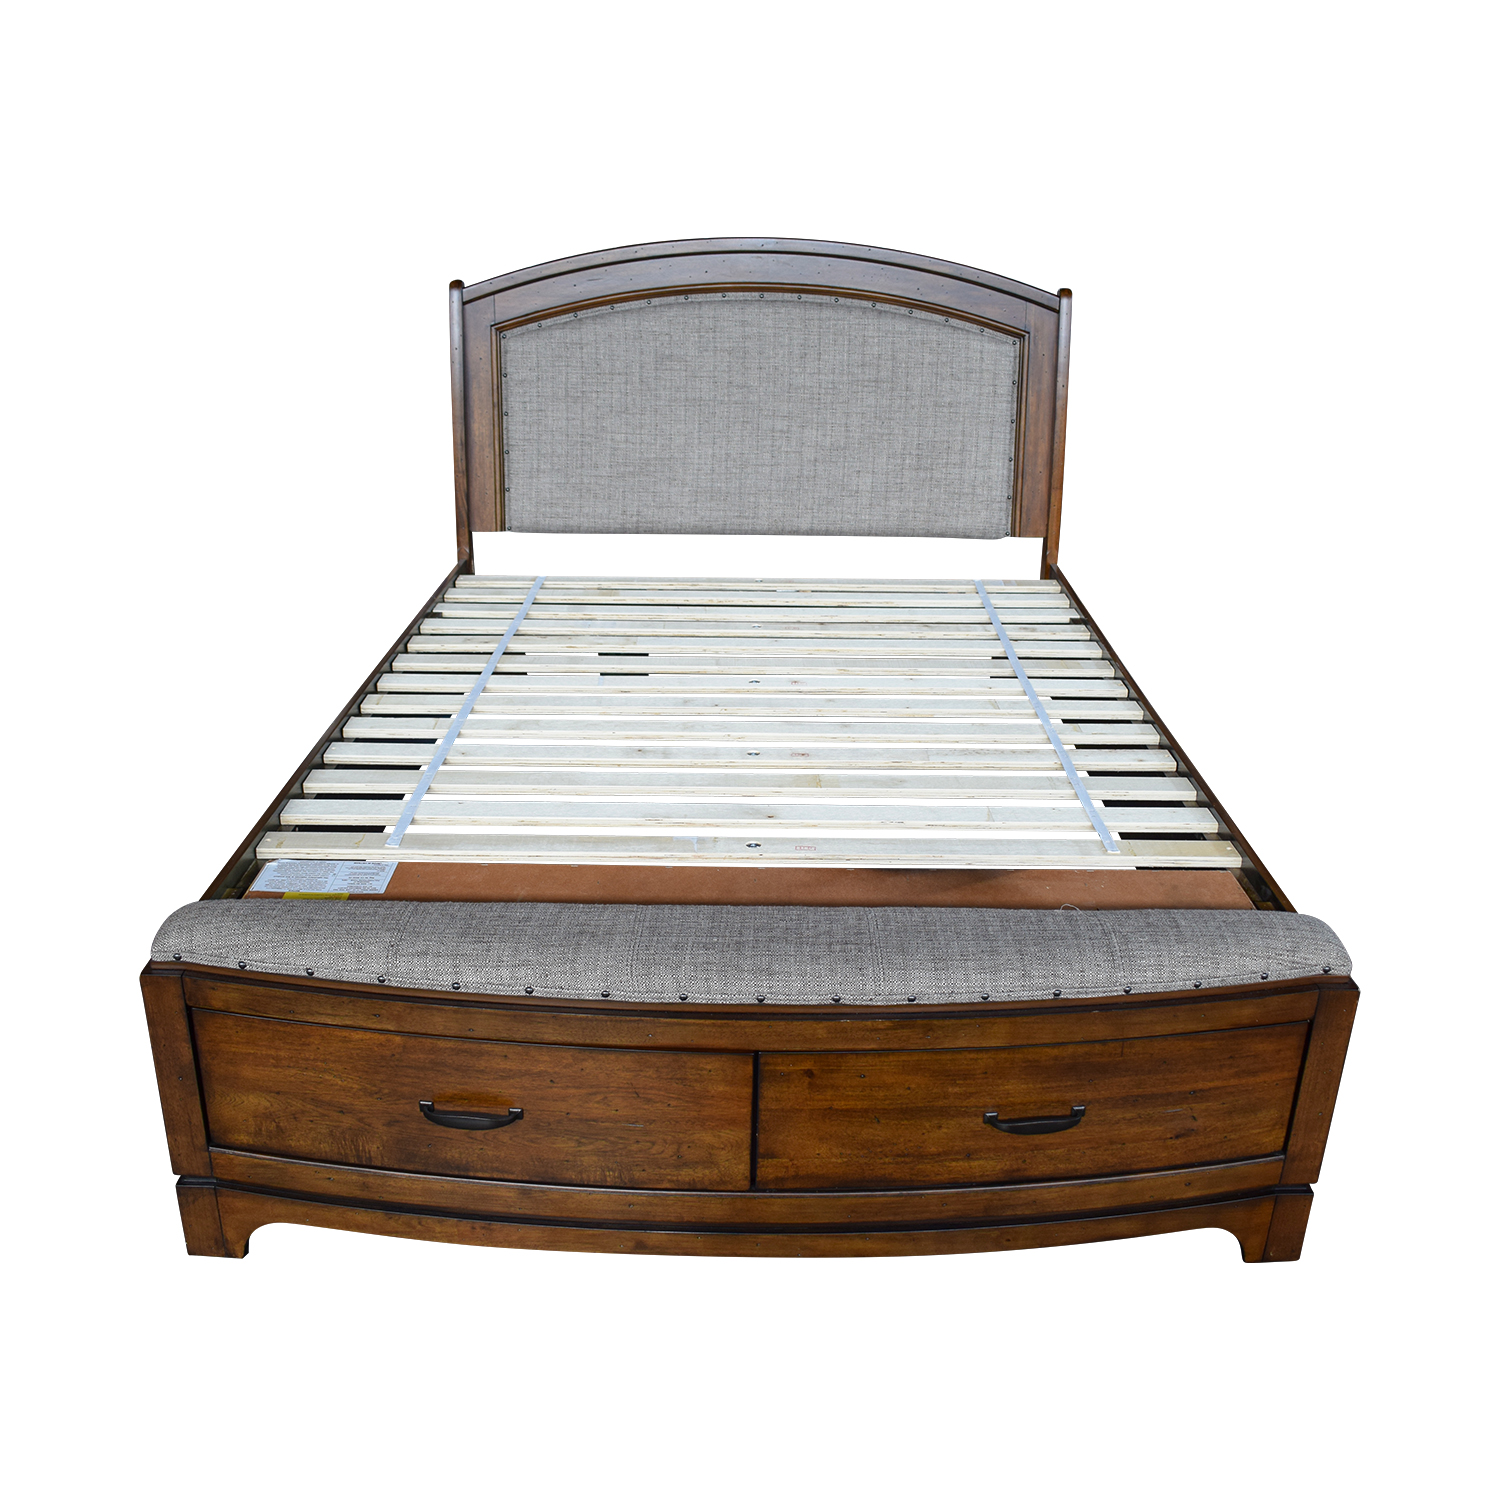 Queen Tufted Wooden Storage Bed